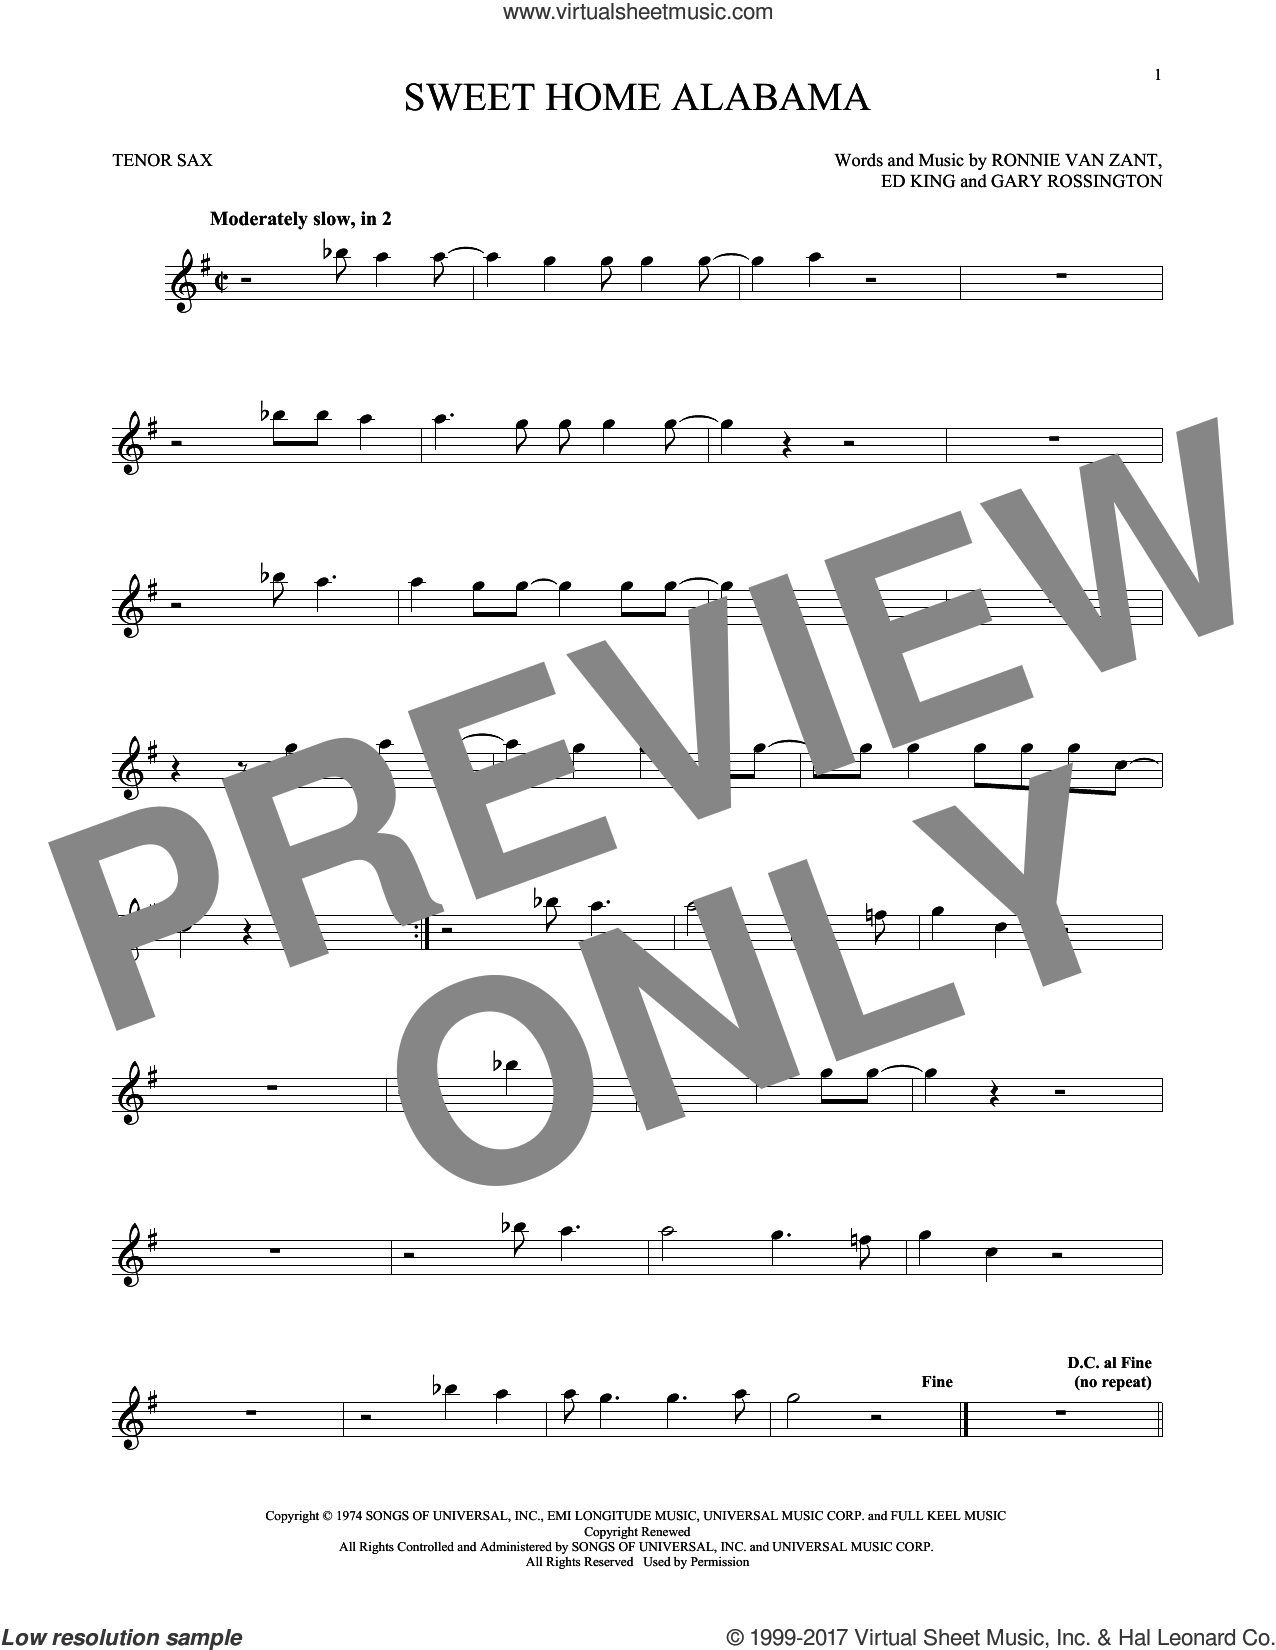 Sweet Home Alabama sheet music for tenor saxophone solo ( Sax) by Lynyrd Skynyrd, Edward King, Gary Rossington and Ronnie Van Zant. Score Image Preview.